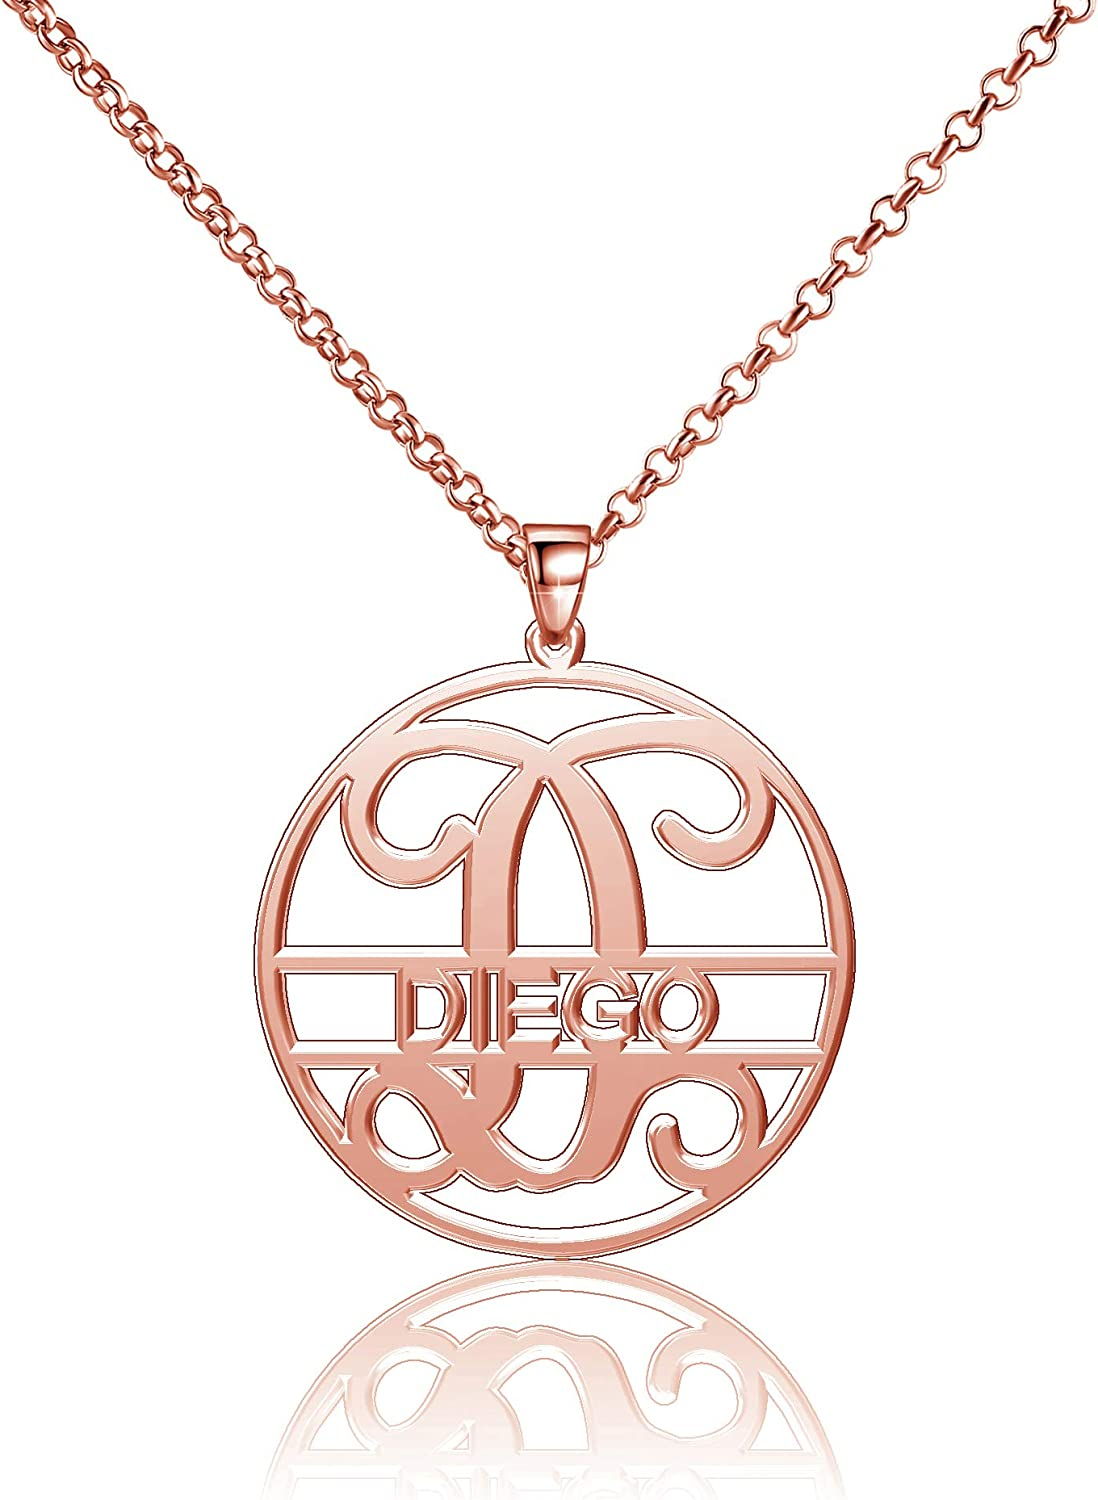 Moonlight Collections Diego Necklace Silver 925 Pendants Personalized Monogrammed Name Plates